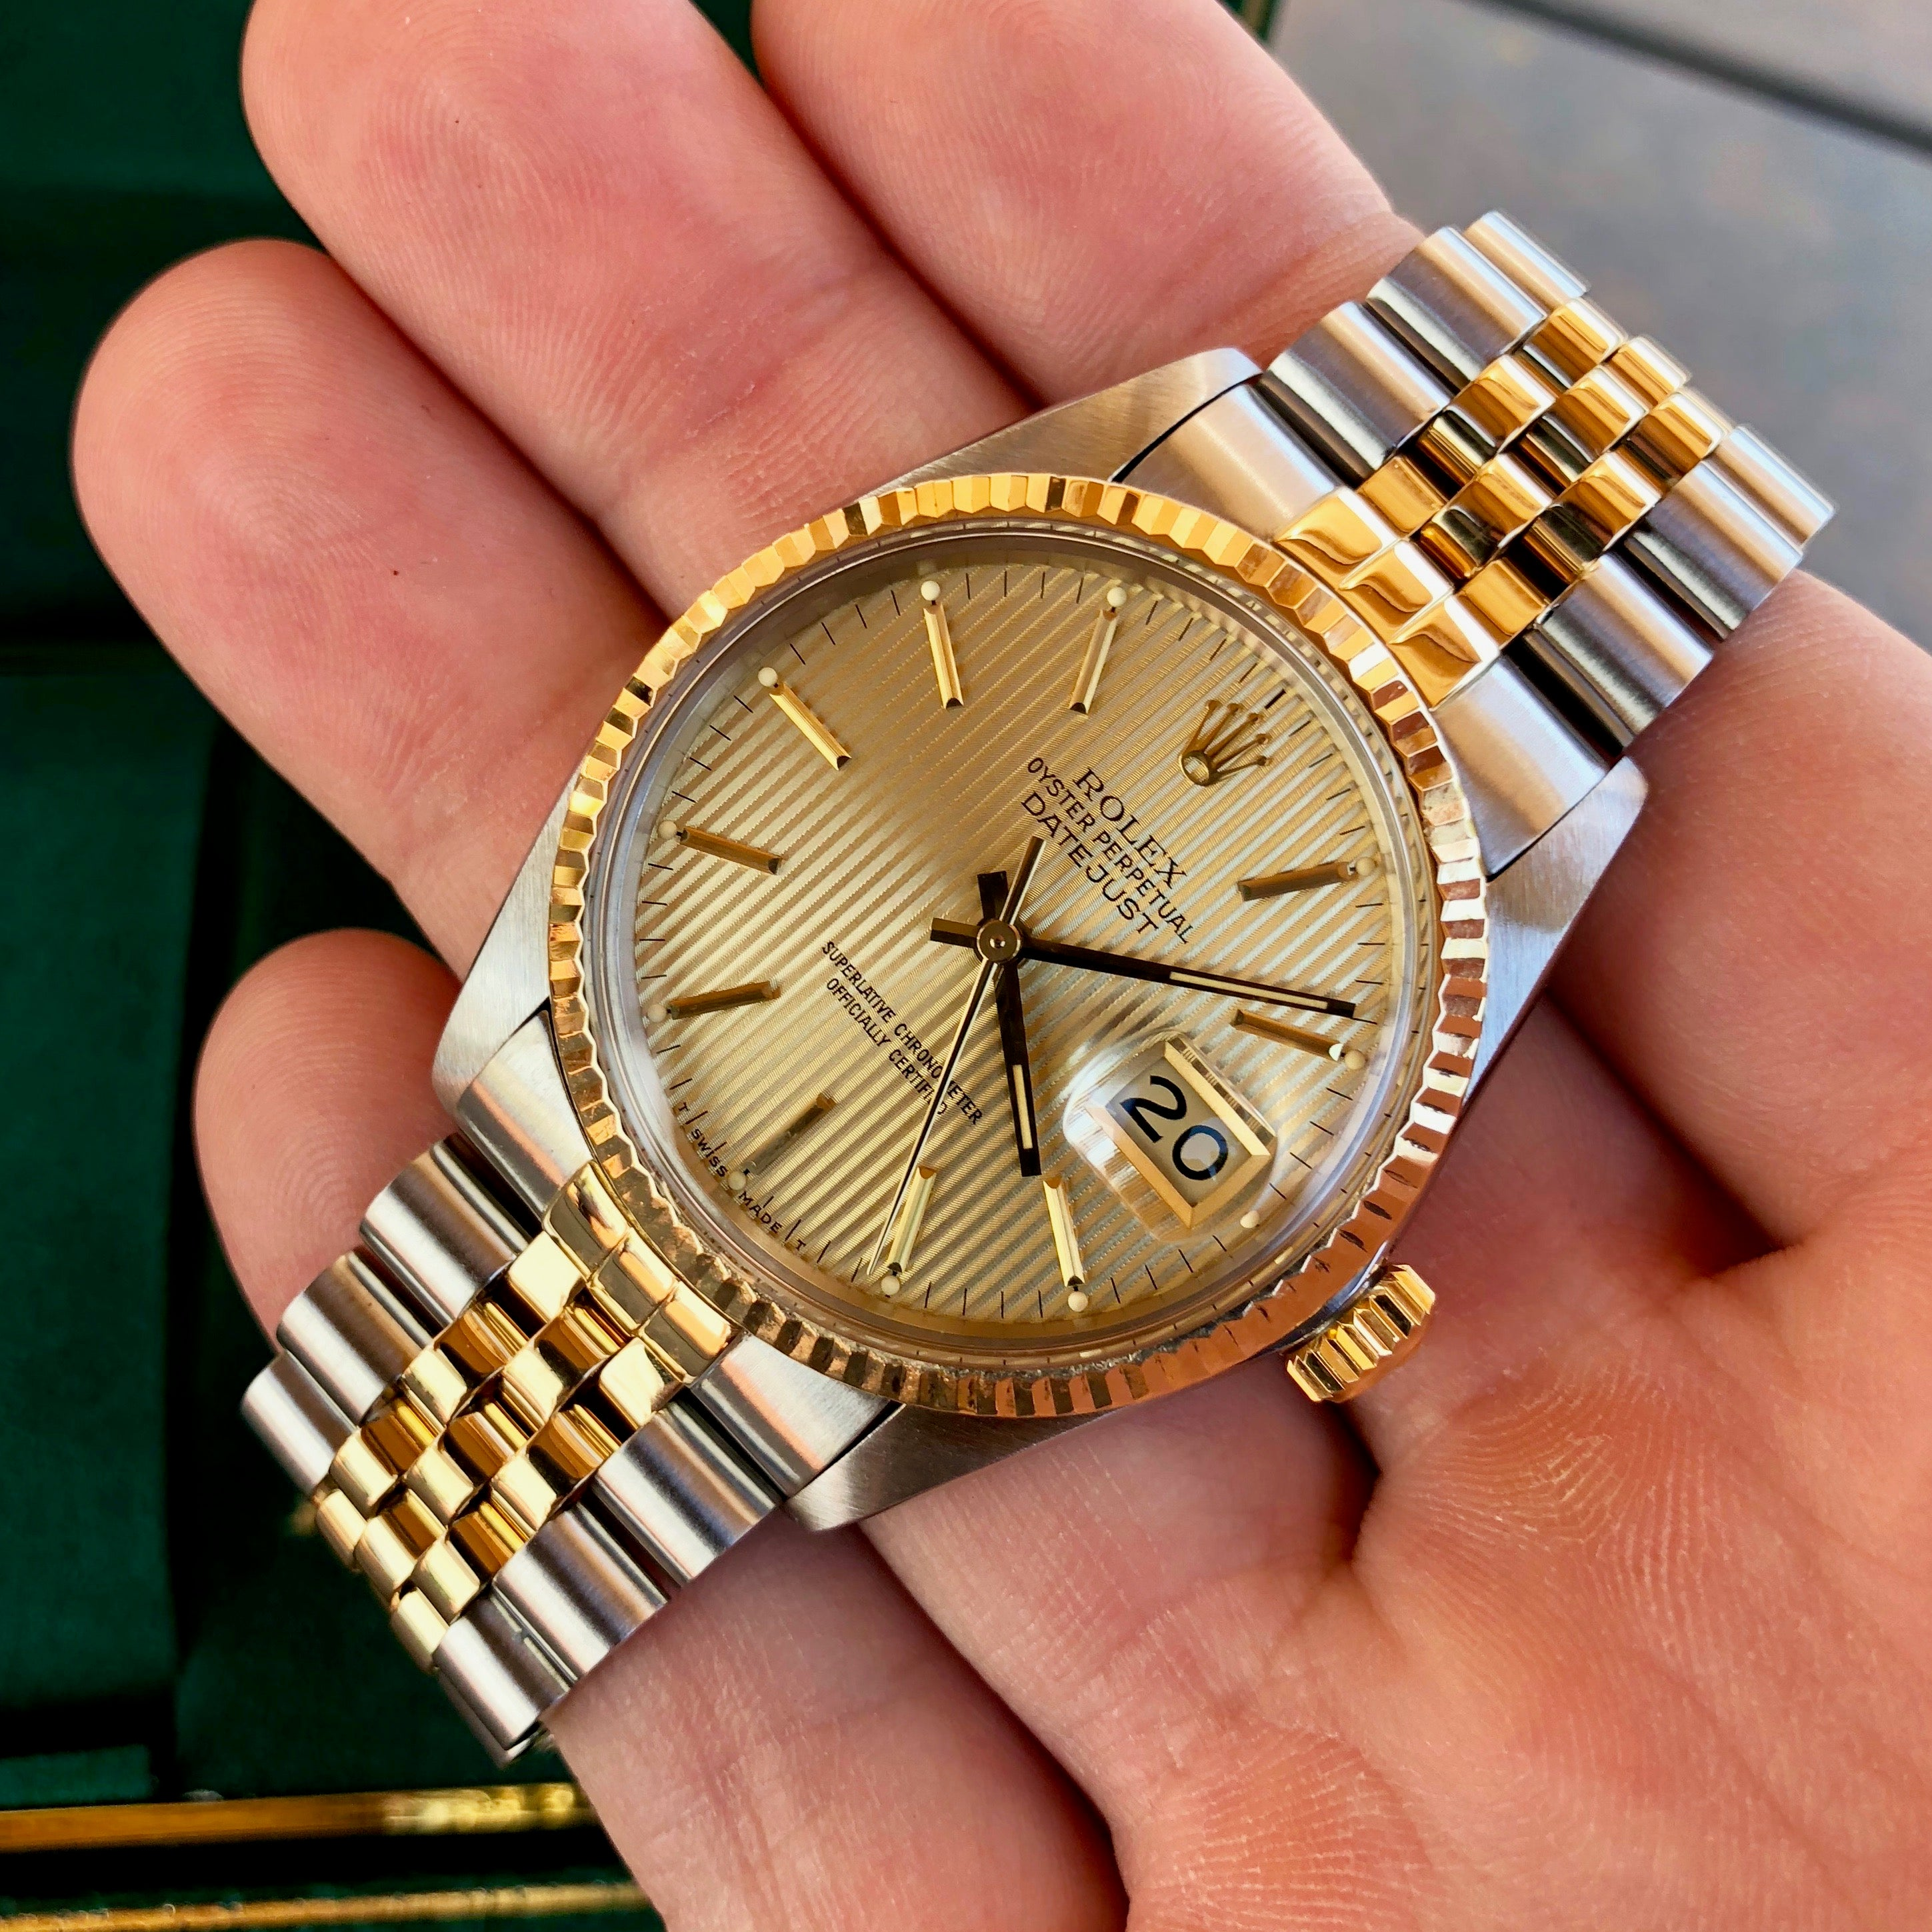 Vintage Rolex Datejust 16013 Champagne Tapestry Cal. 3035 Oyster Perpetual Two Tone Steel Gold Wristwatch Box & Papers Circa 1985